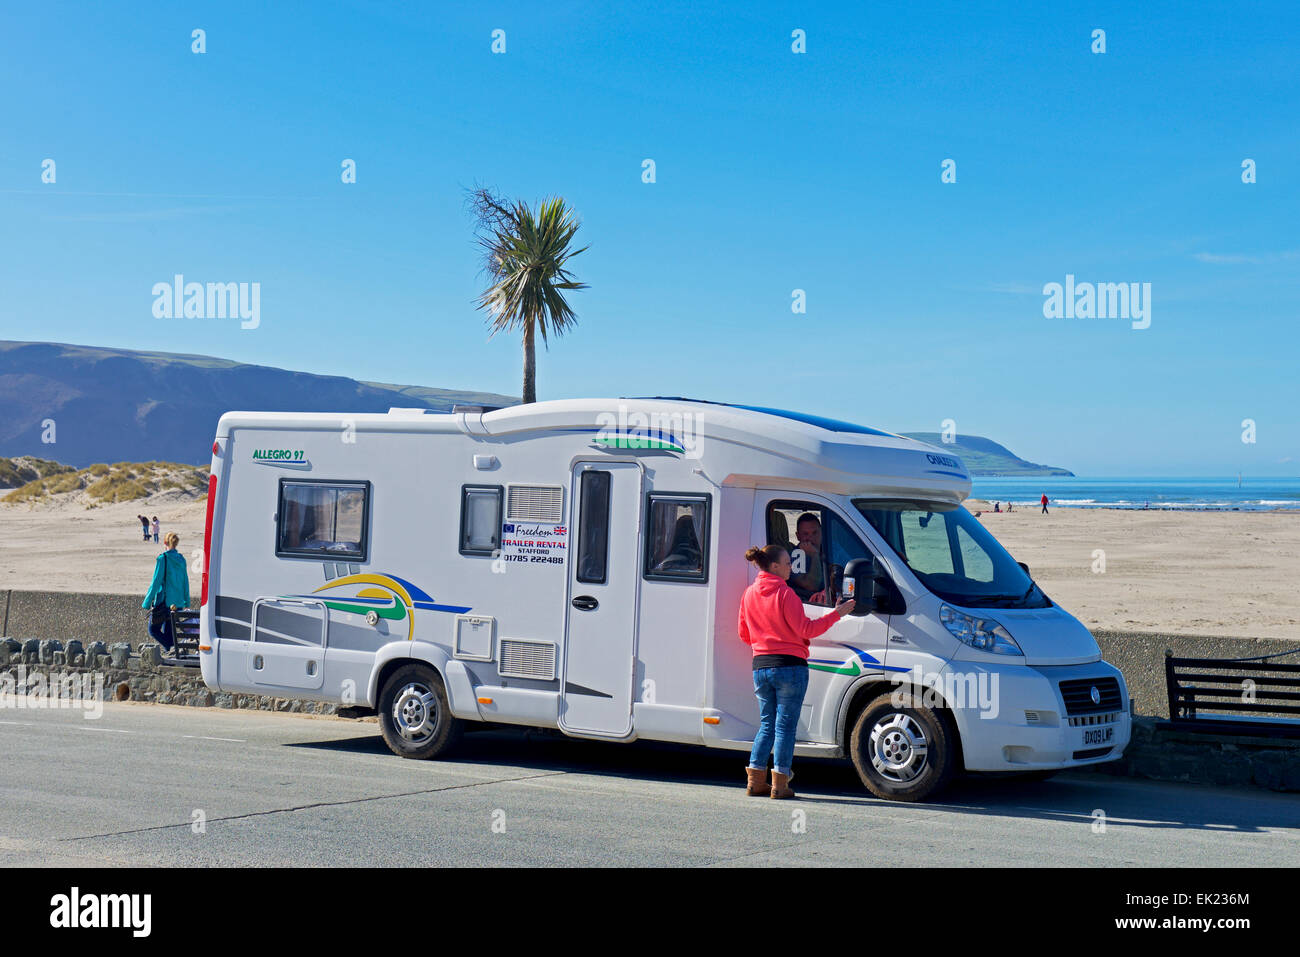 Motorhome parked on the promenade, Barmouth, Gwynedd, North Wales UK - Stock Image